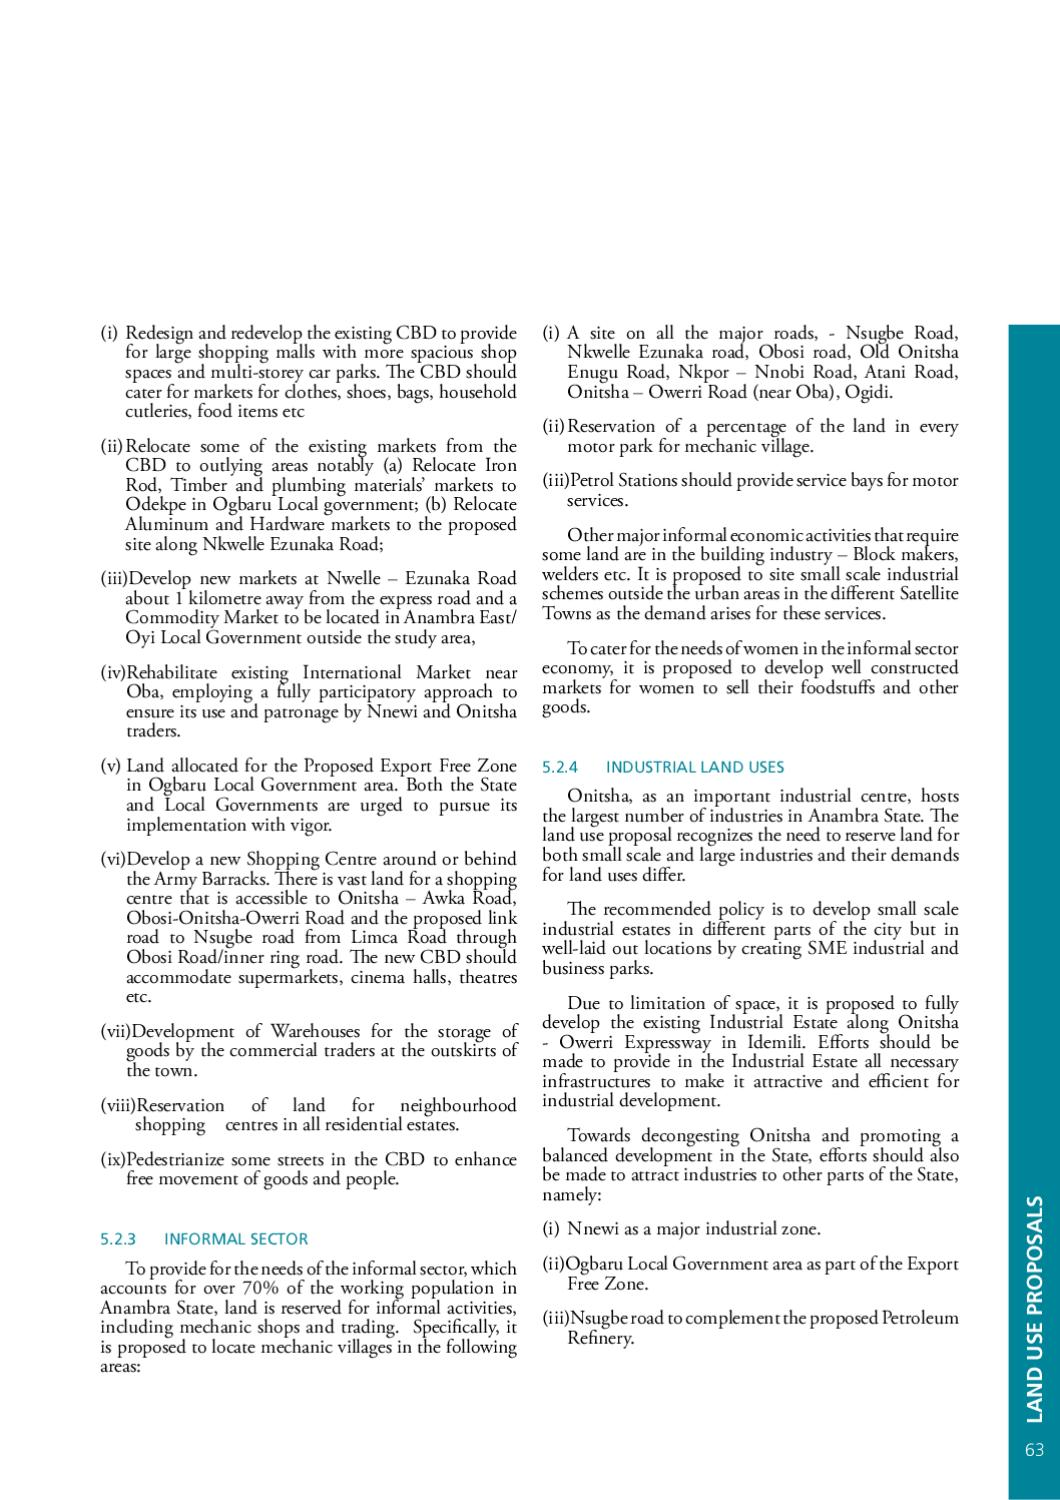 STRUCTURE PLAN FOR ONITSHA AND SATELLITE TOWNS by UN-Habitat - issuu